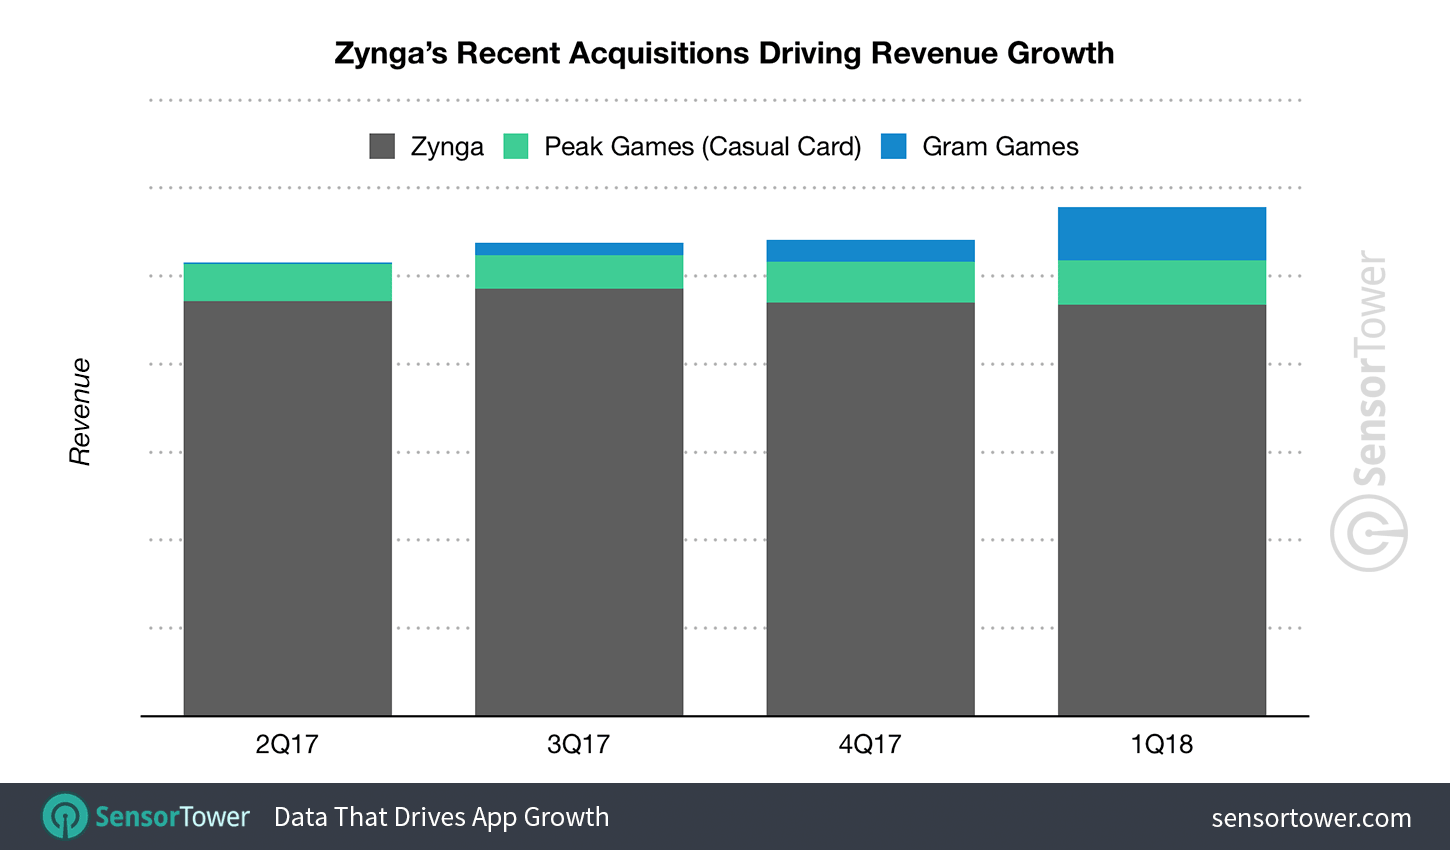 Chart showing Zynga's revenue for the past four quarters with Gram Games and Peak Games revenue added  - zynga acquisitions drive revenue growth - Zynga's Acquisition Strategy Is Reshaping Its Portfolio for Future Growth